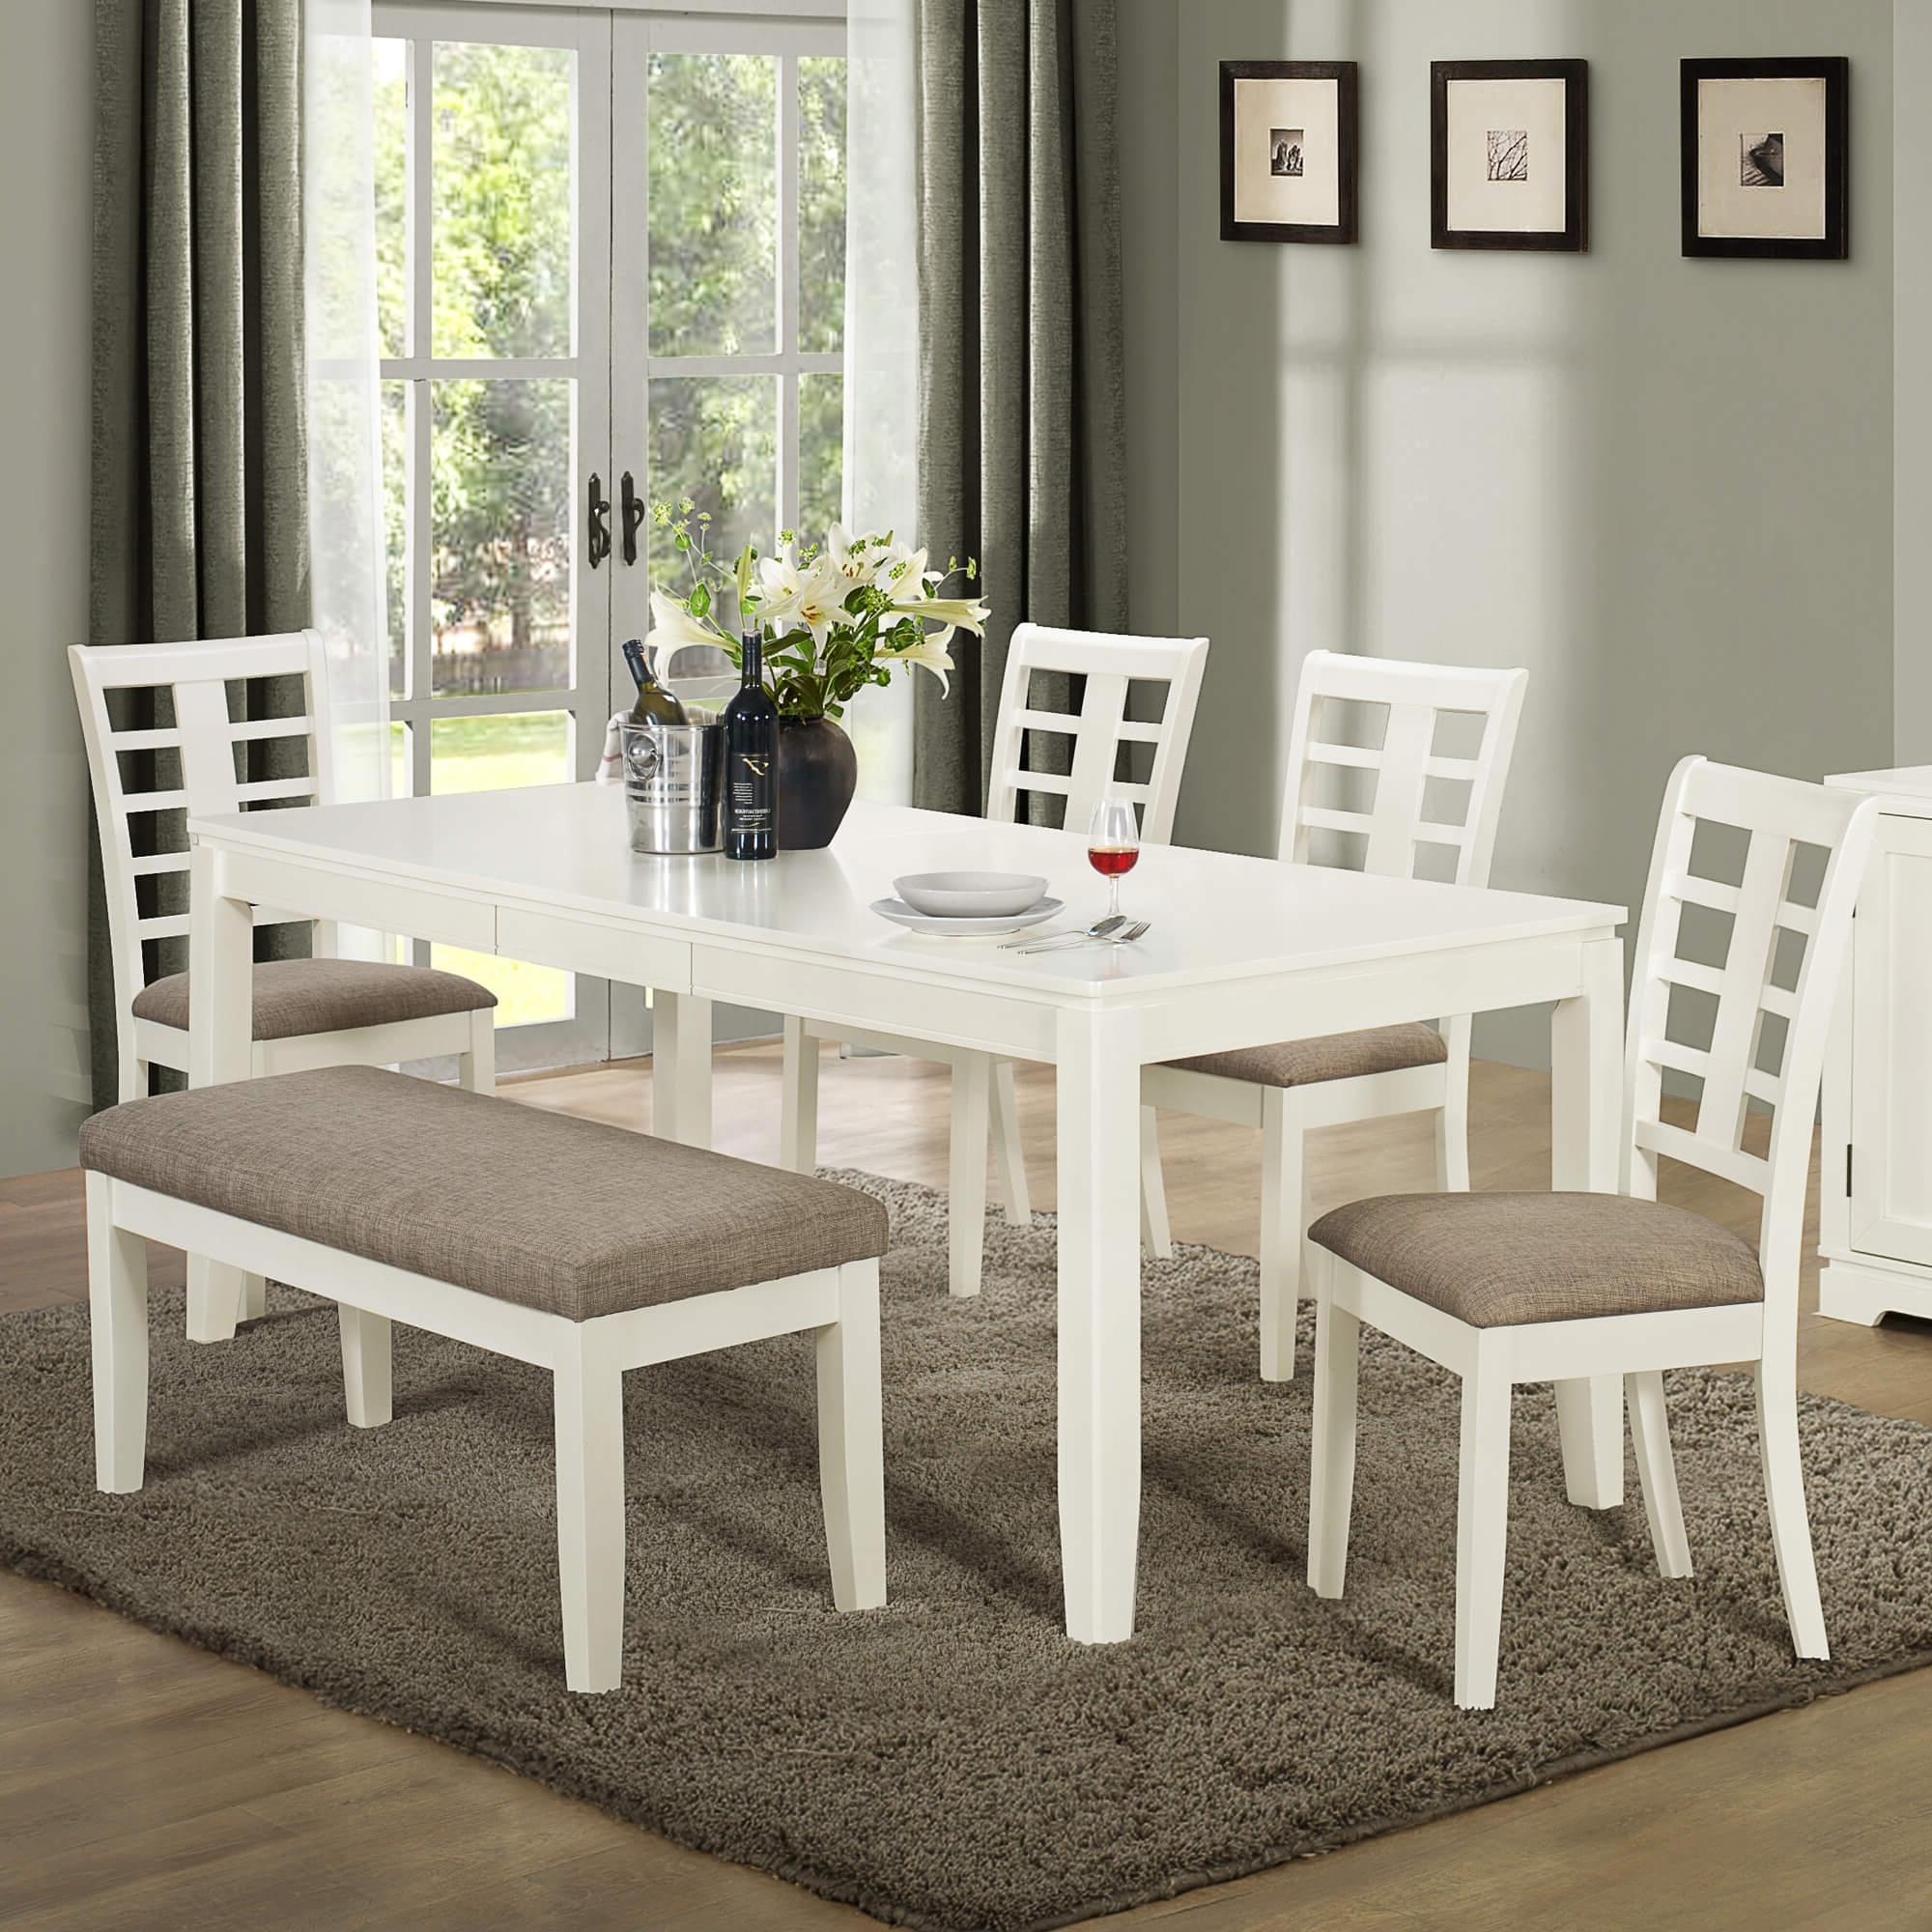 26 Dining Room Sets (Big And Small) With Bench Seating (2018) With Well Liked Craftsman 5 Piece Round Dining Sets With Uph Side Chairs (View 14 of 25)